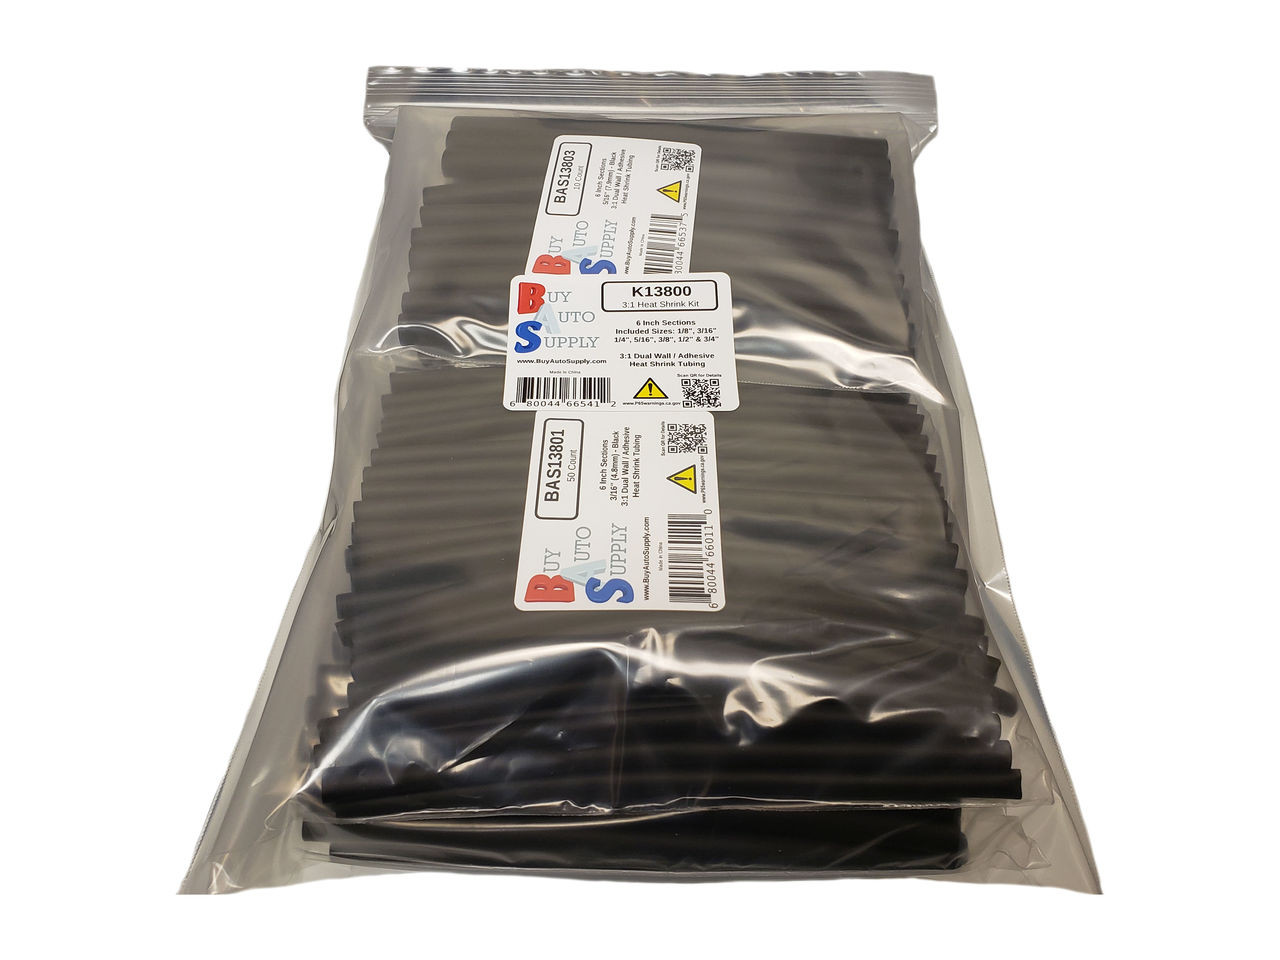 ASK13800 3:1 Dual Wall Adhesive Lined Heat Shrink Tube - Starter Kit